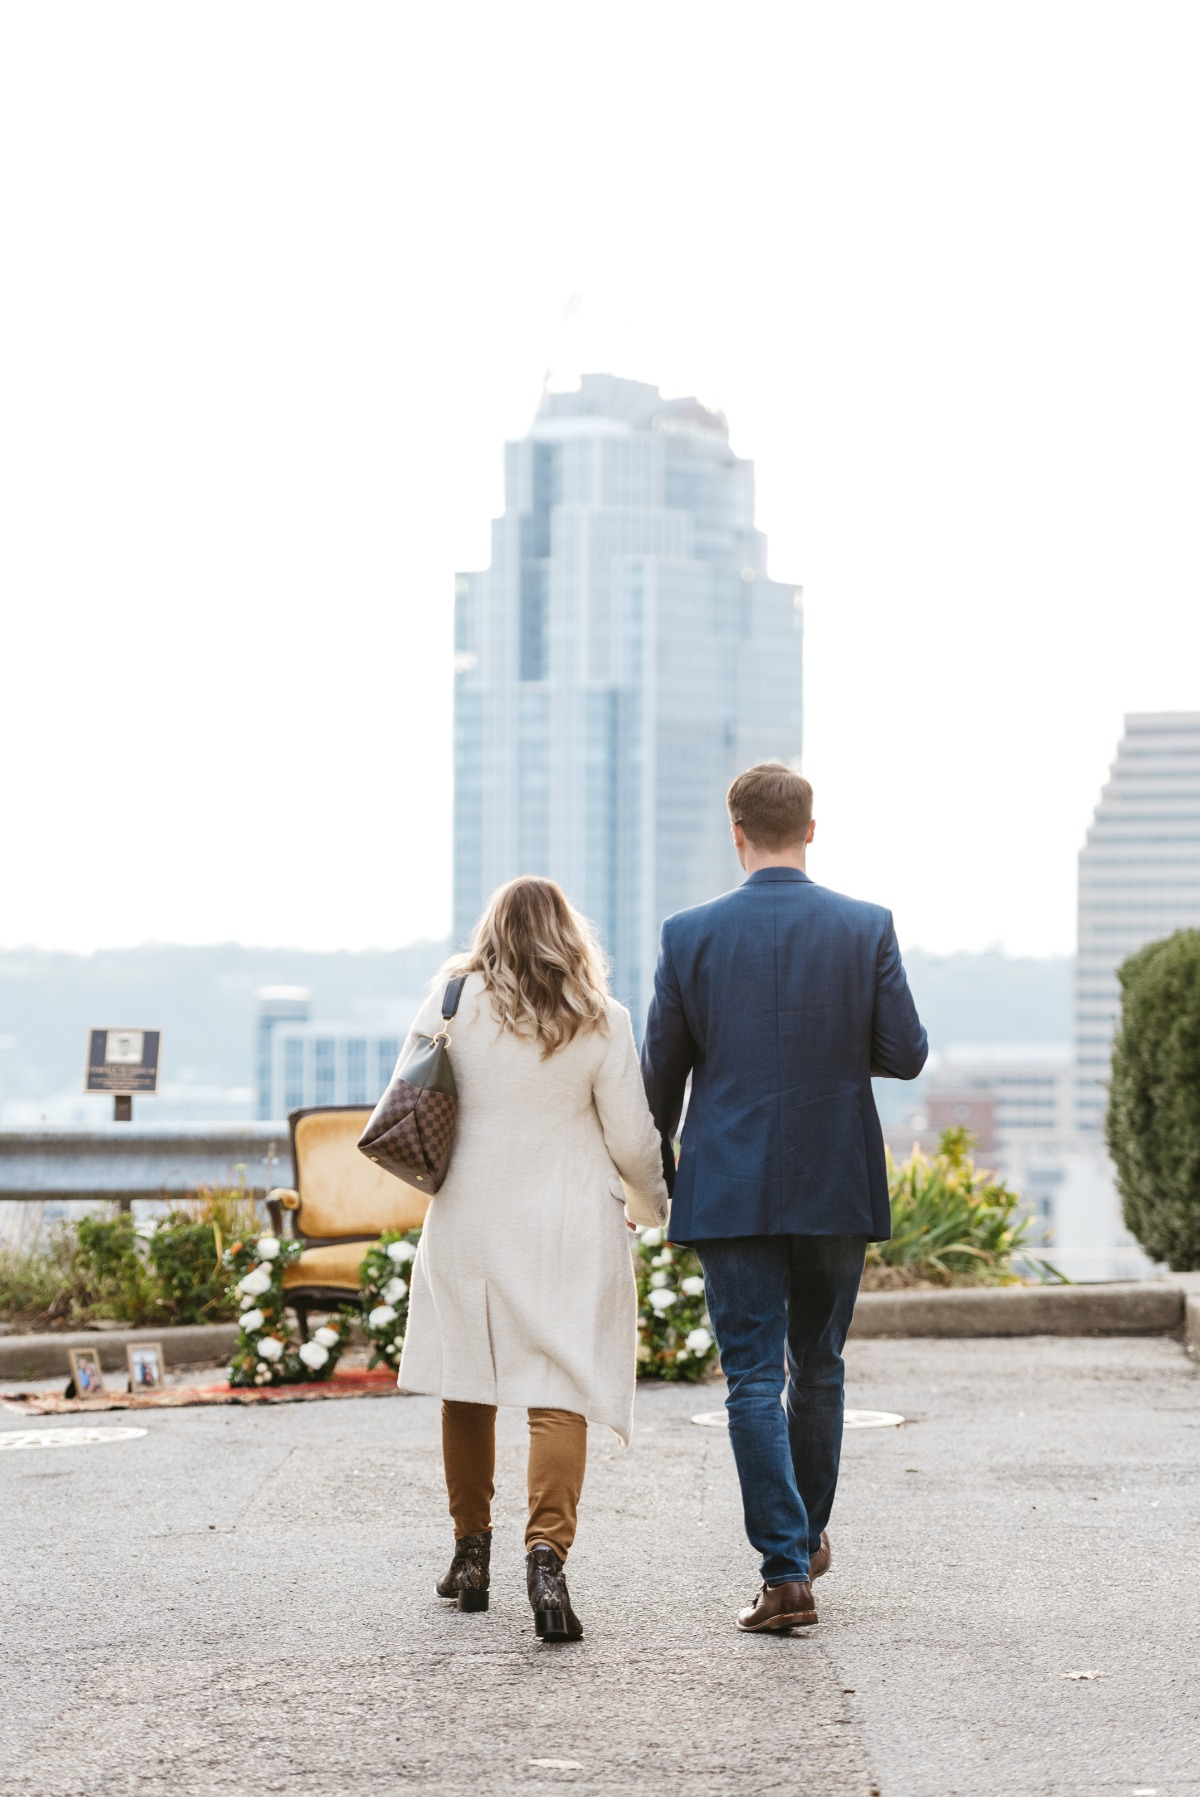 A Romantic Rooftop Proposal Inspired By A Broadway Classic